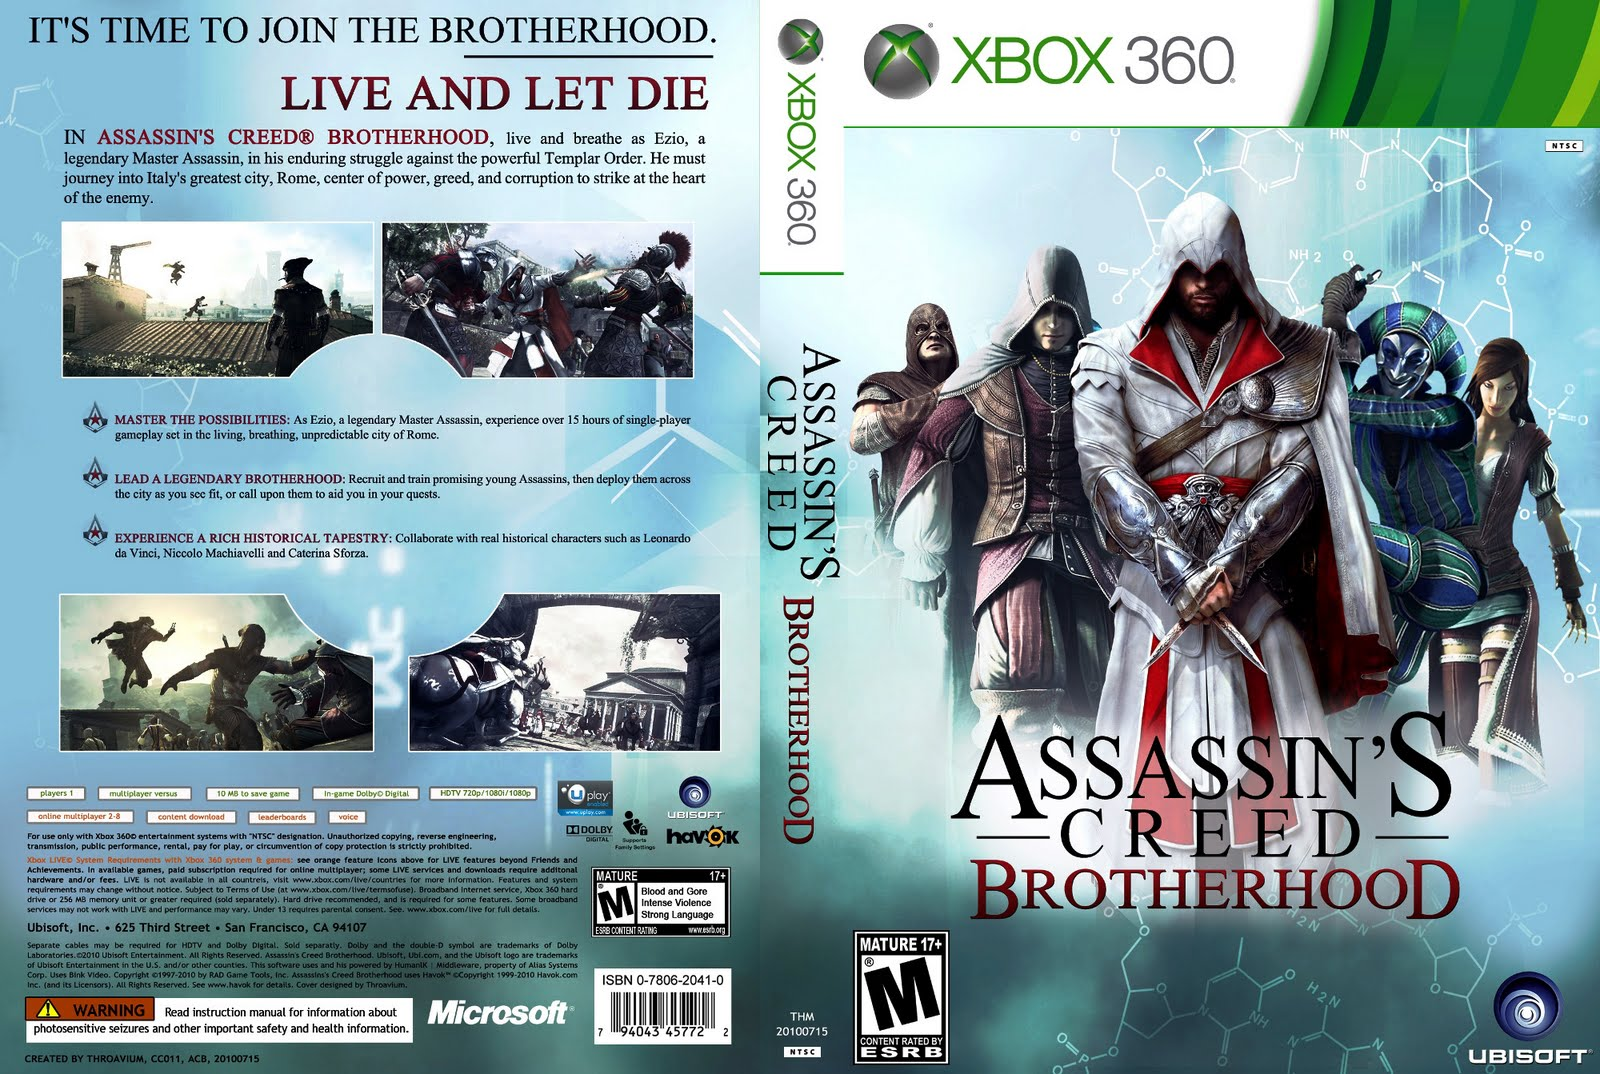 caratula de assassins creed brotherhood v2 xbox 360 dvd